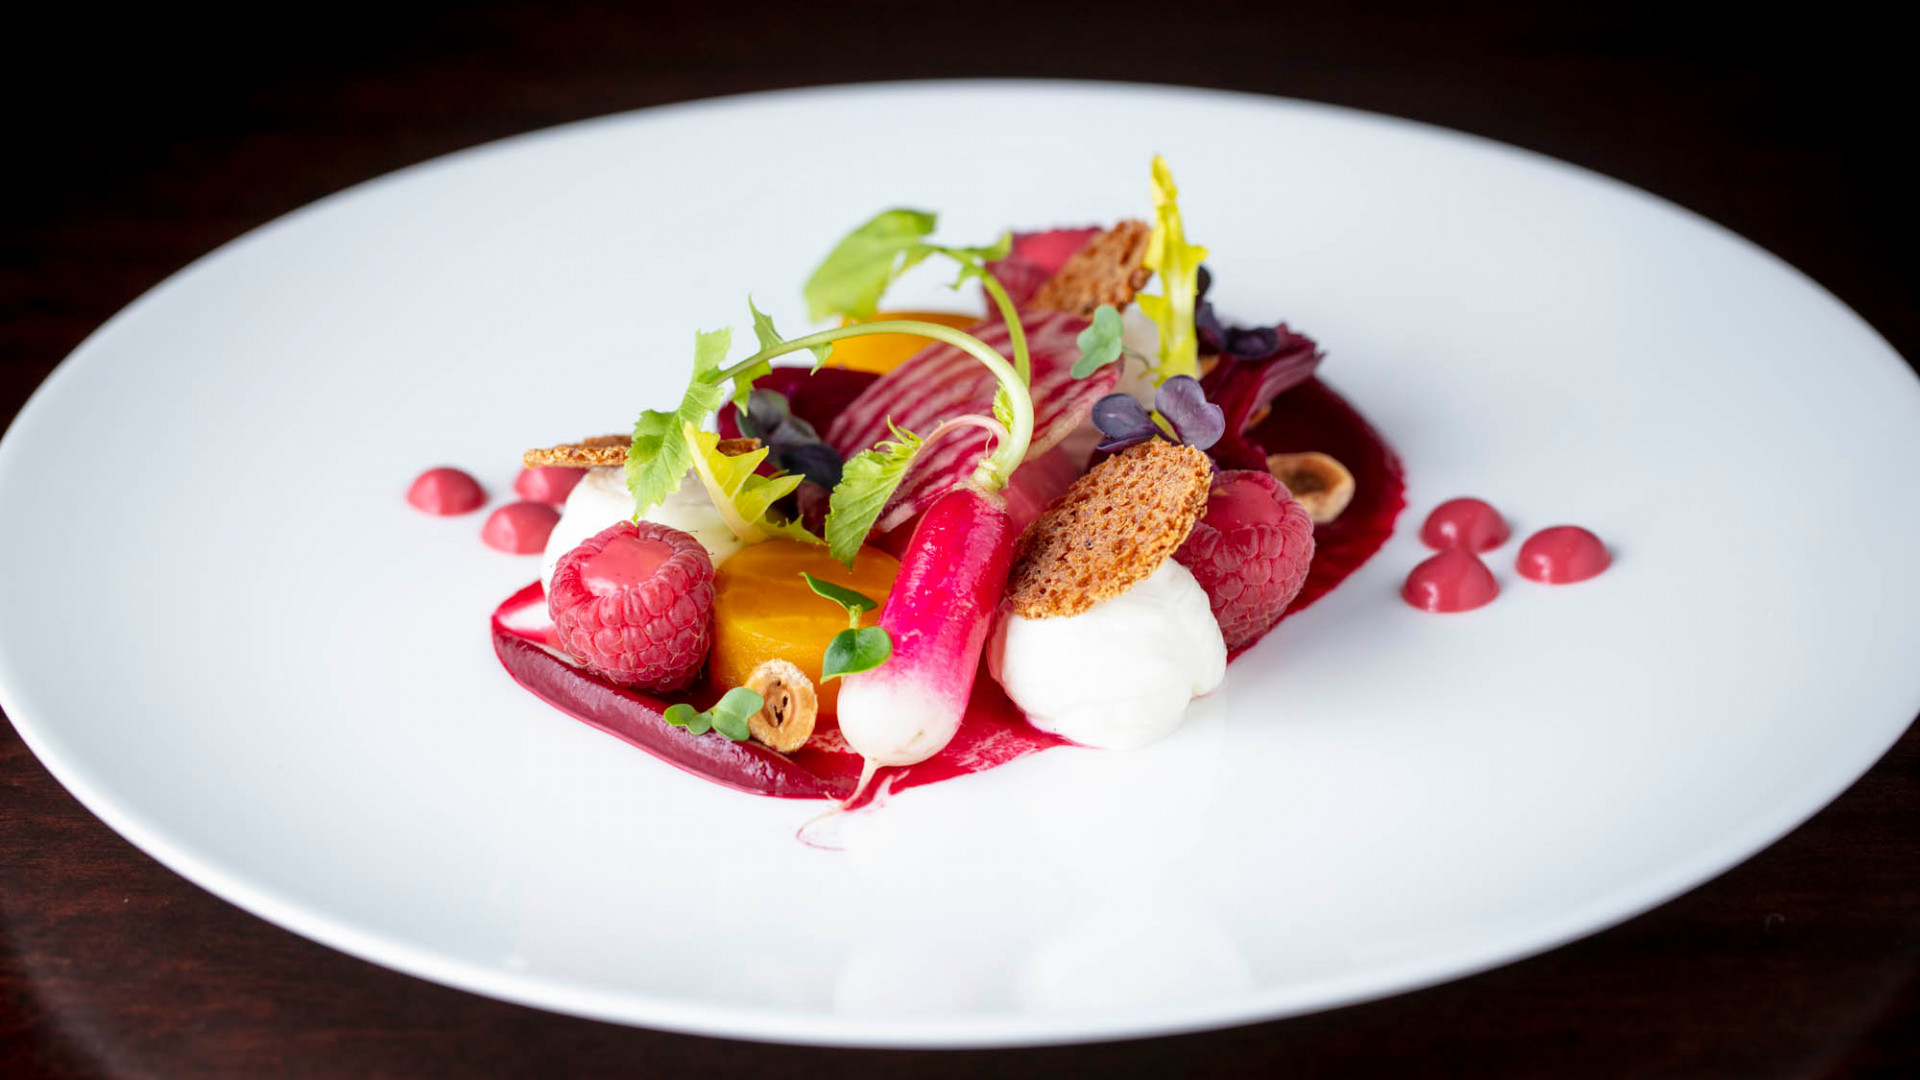 Heritage beetroot & whipped goats' cheese salad with raspberry and gingerbread crisp